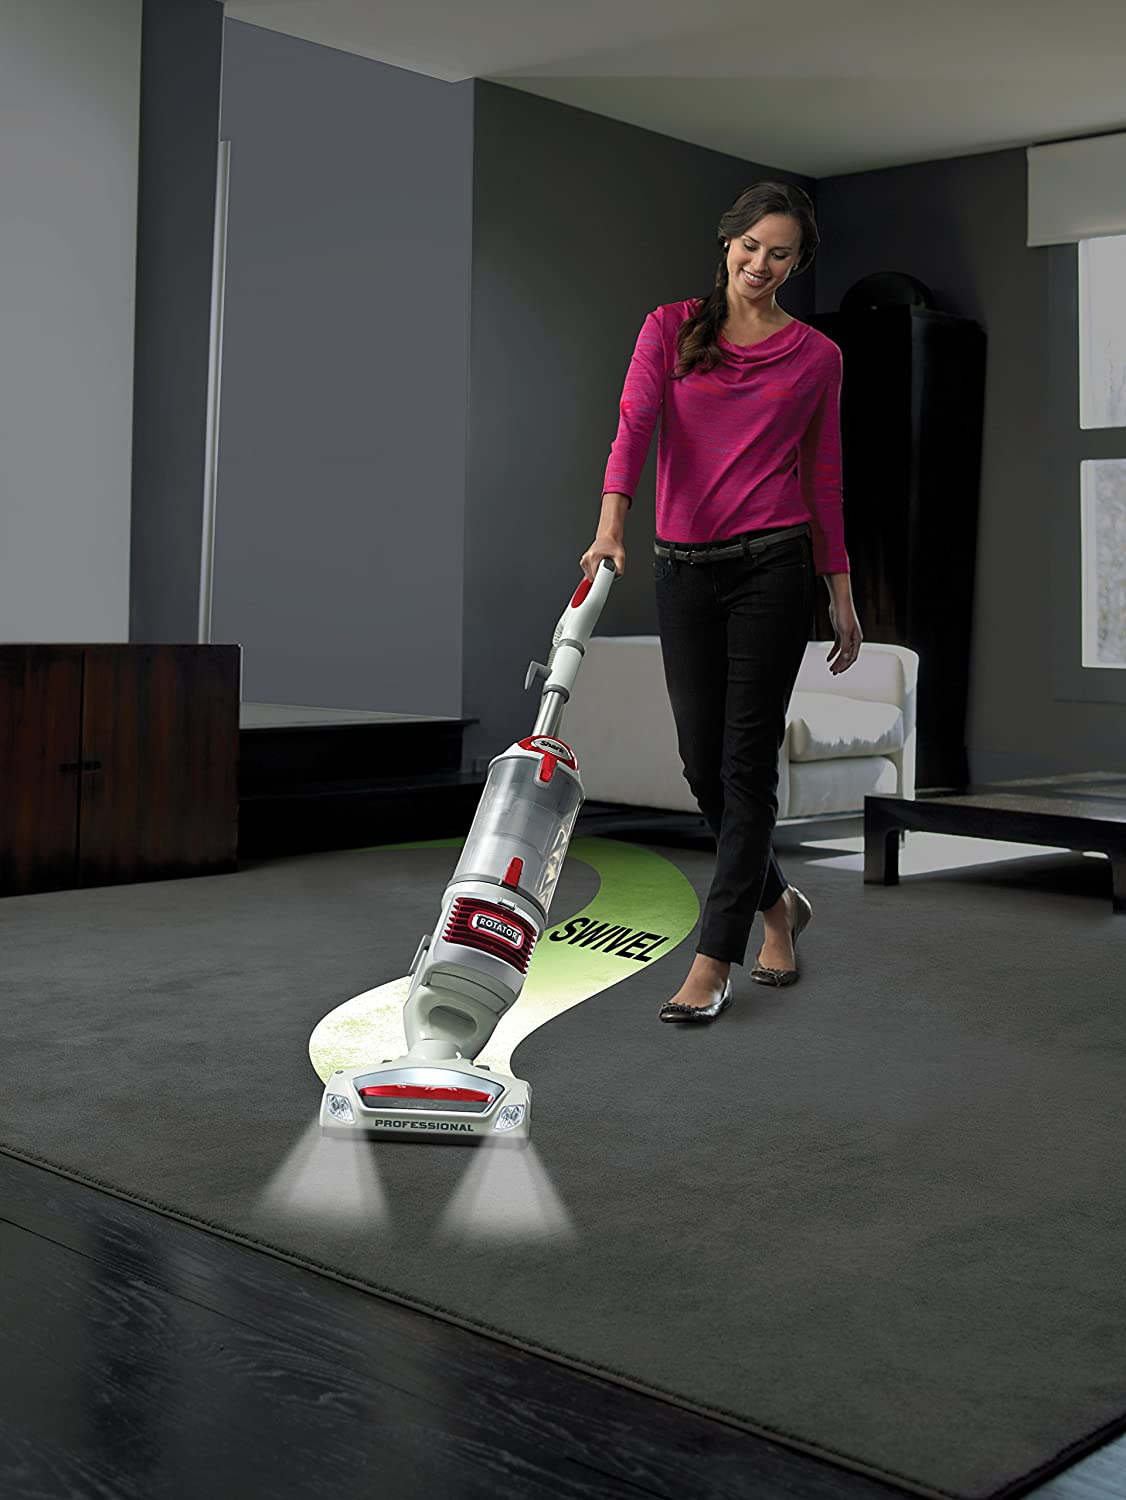 Shark Rotator Vacuum for Carpet and Hard Floor